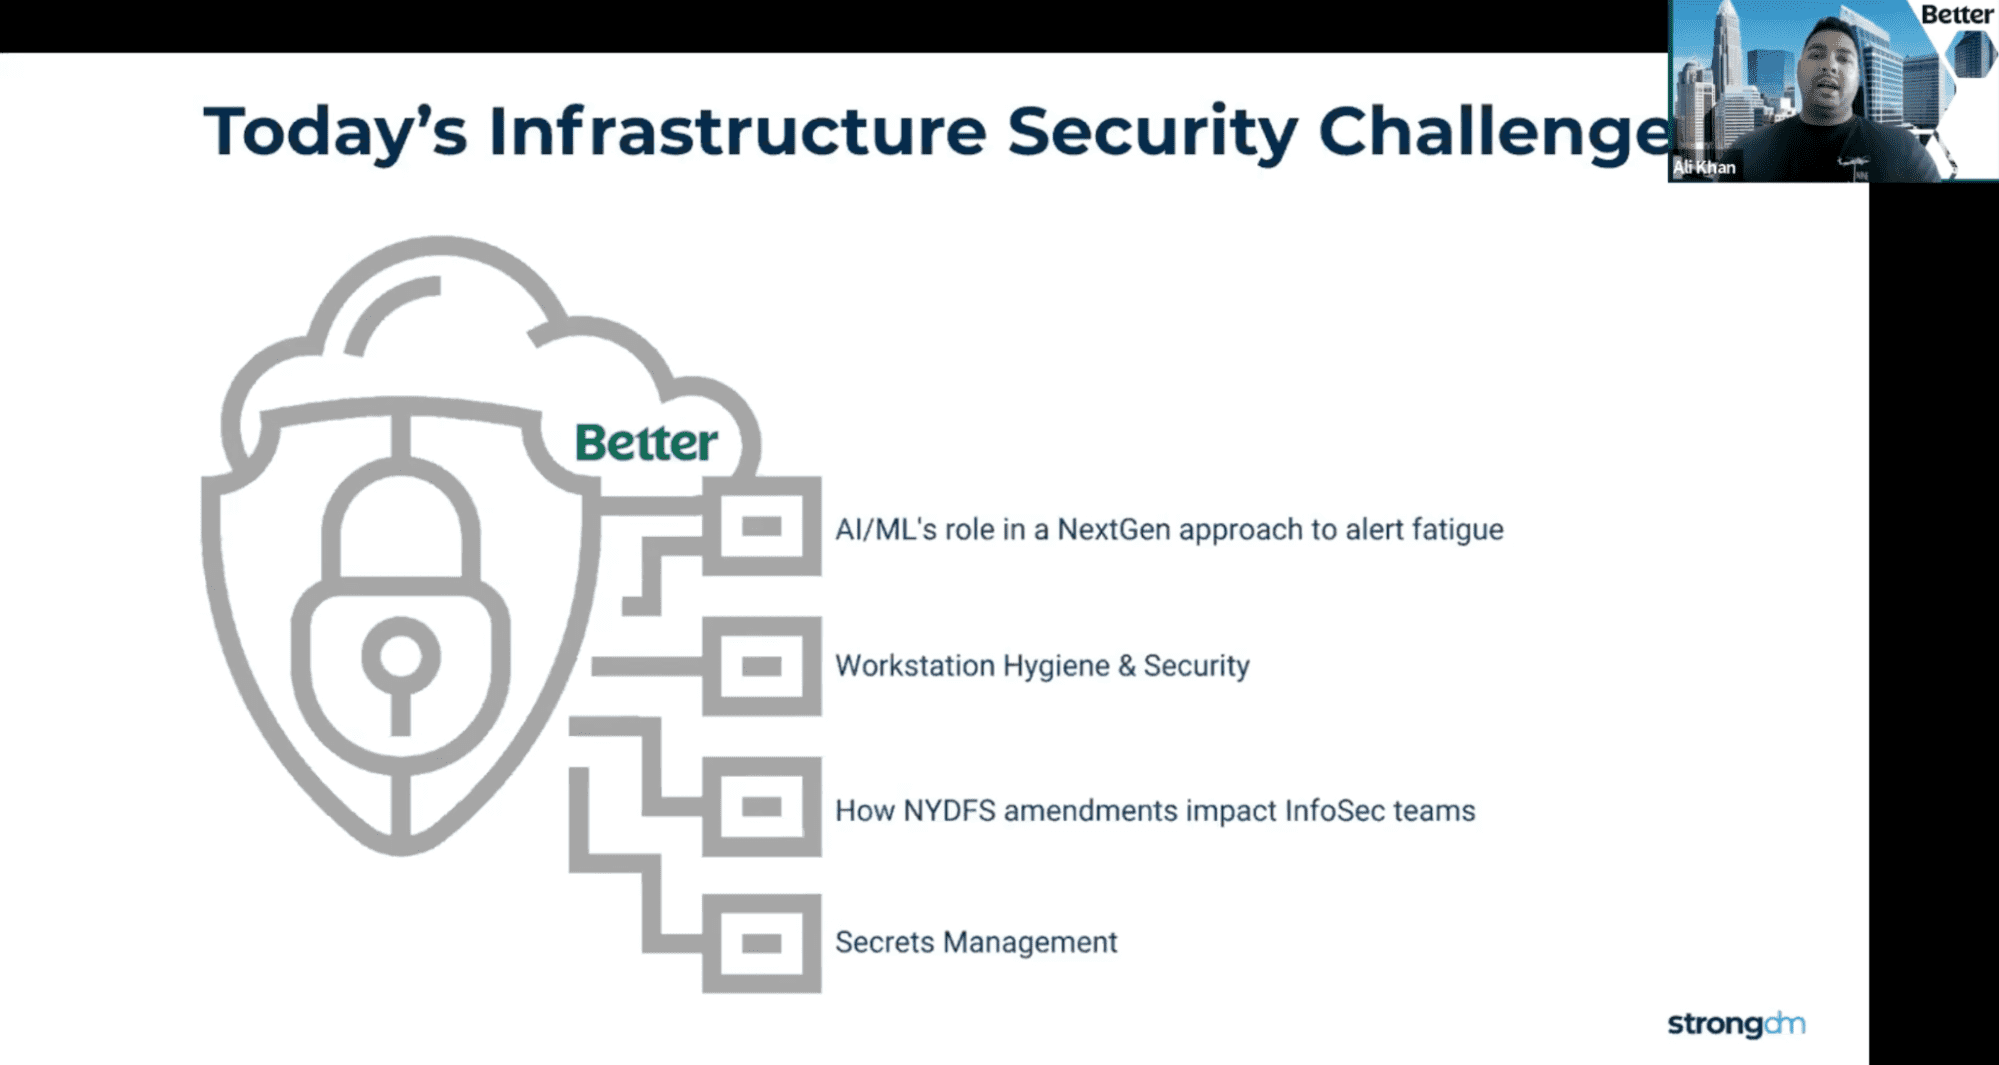 Better is tackling modern infrastructure security challenges.